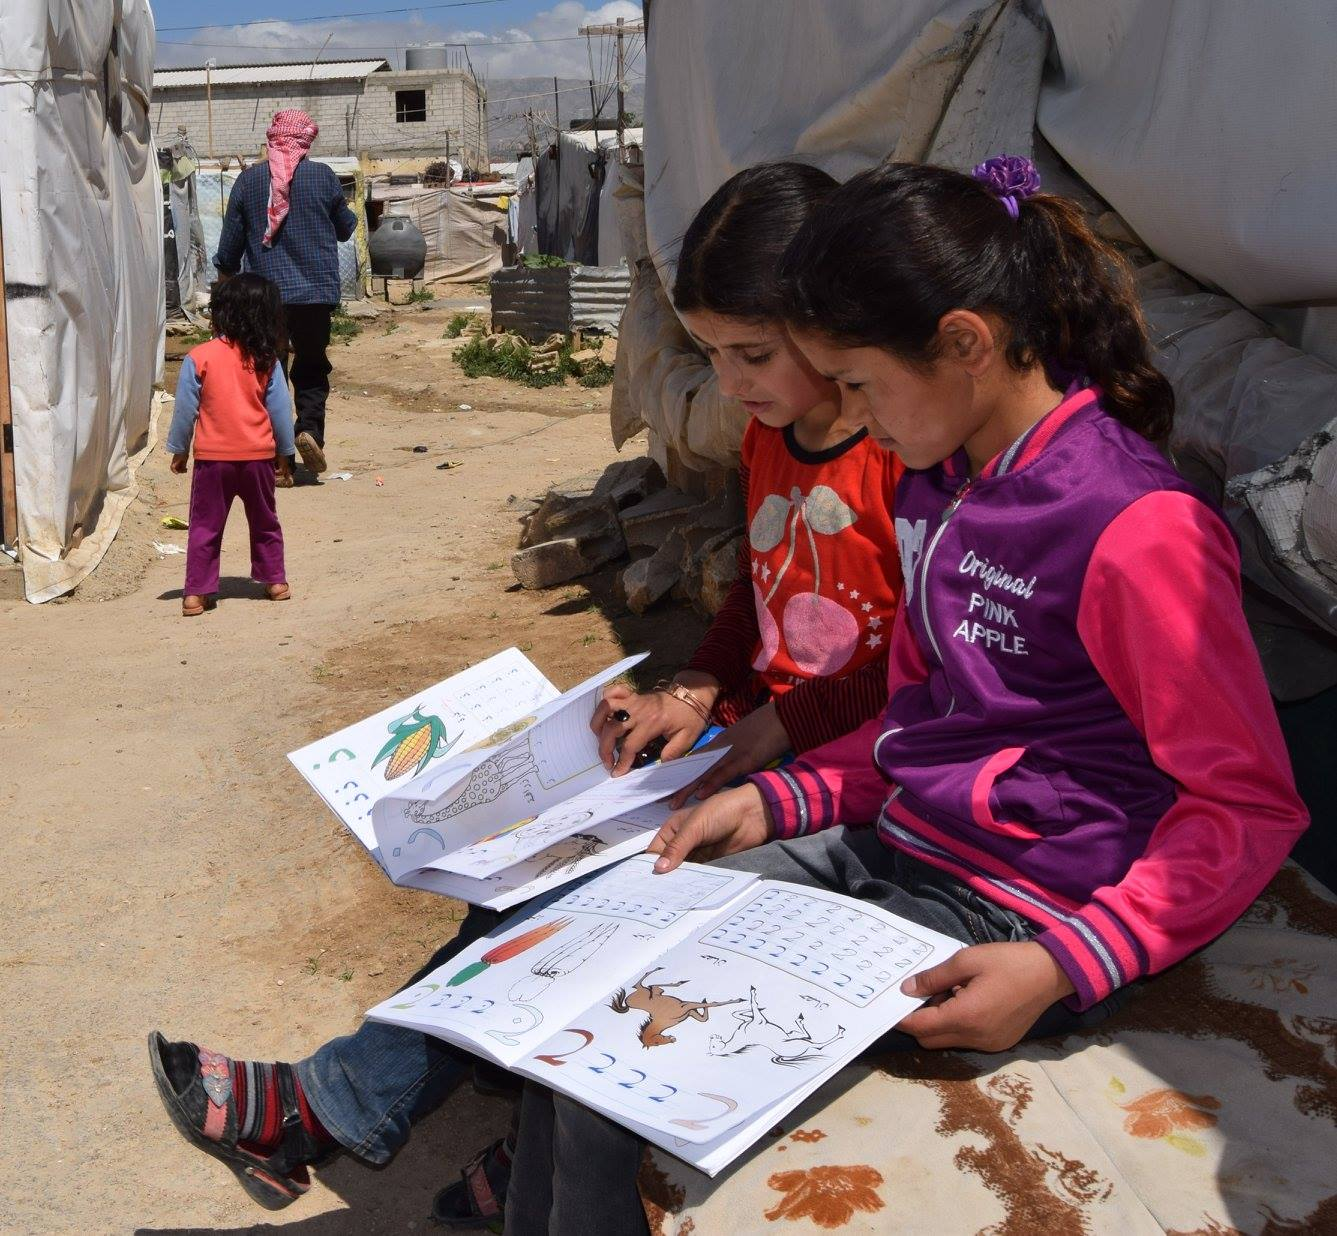 Responding to the global refugee crisis in 2018